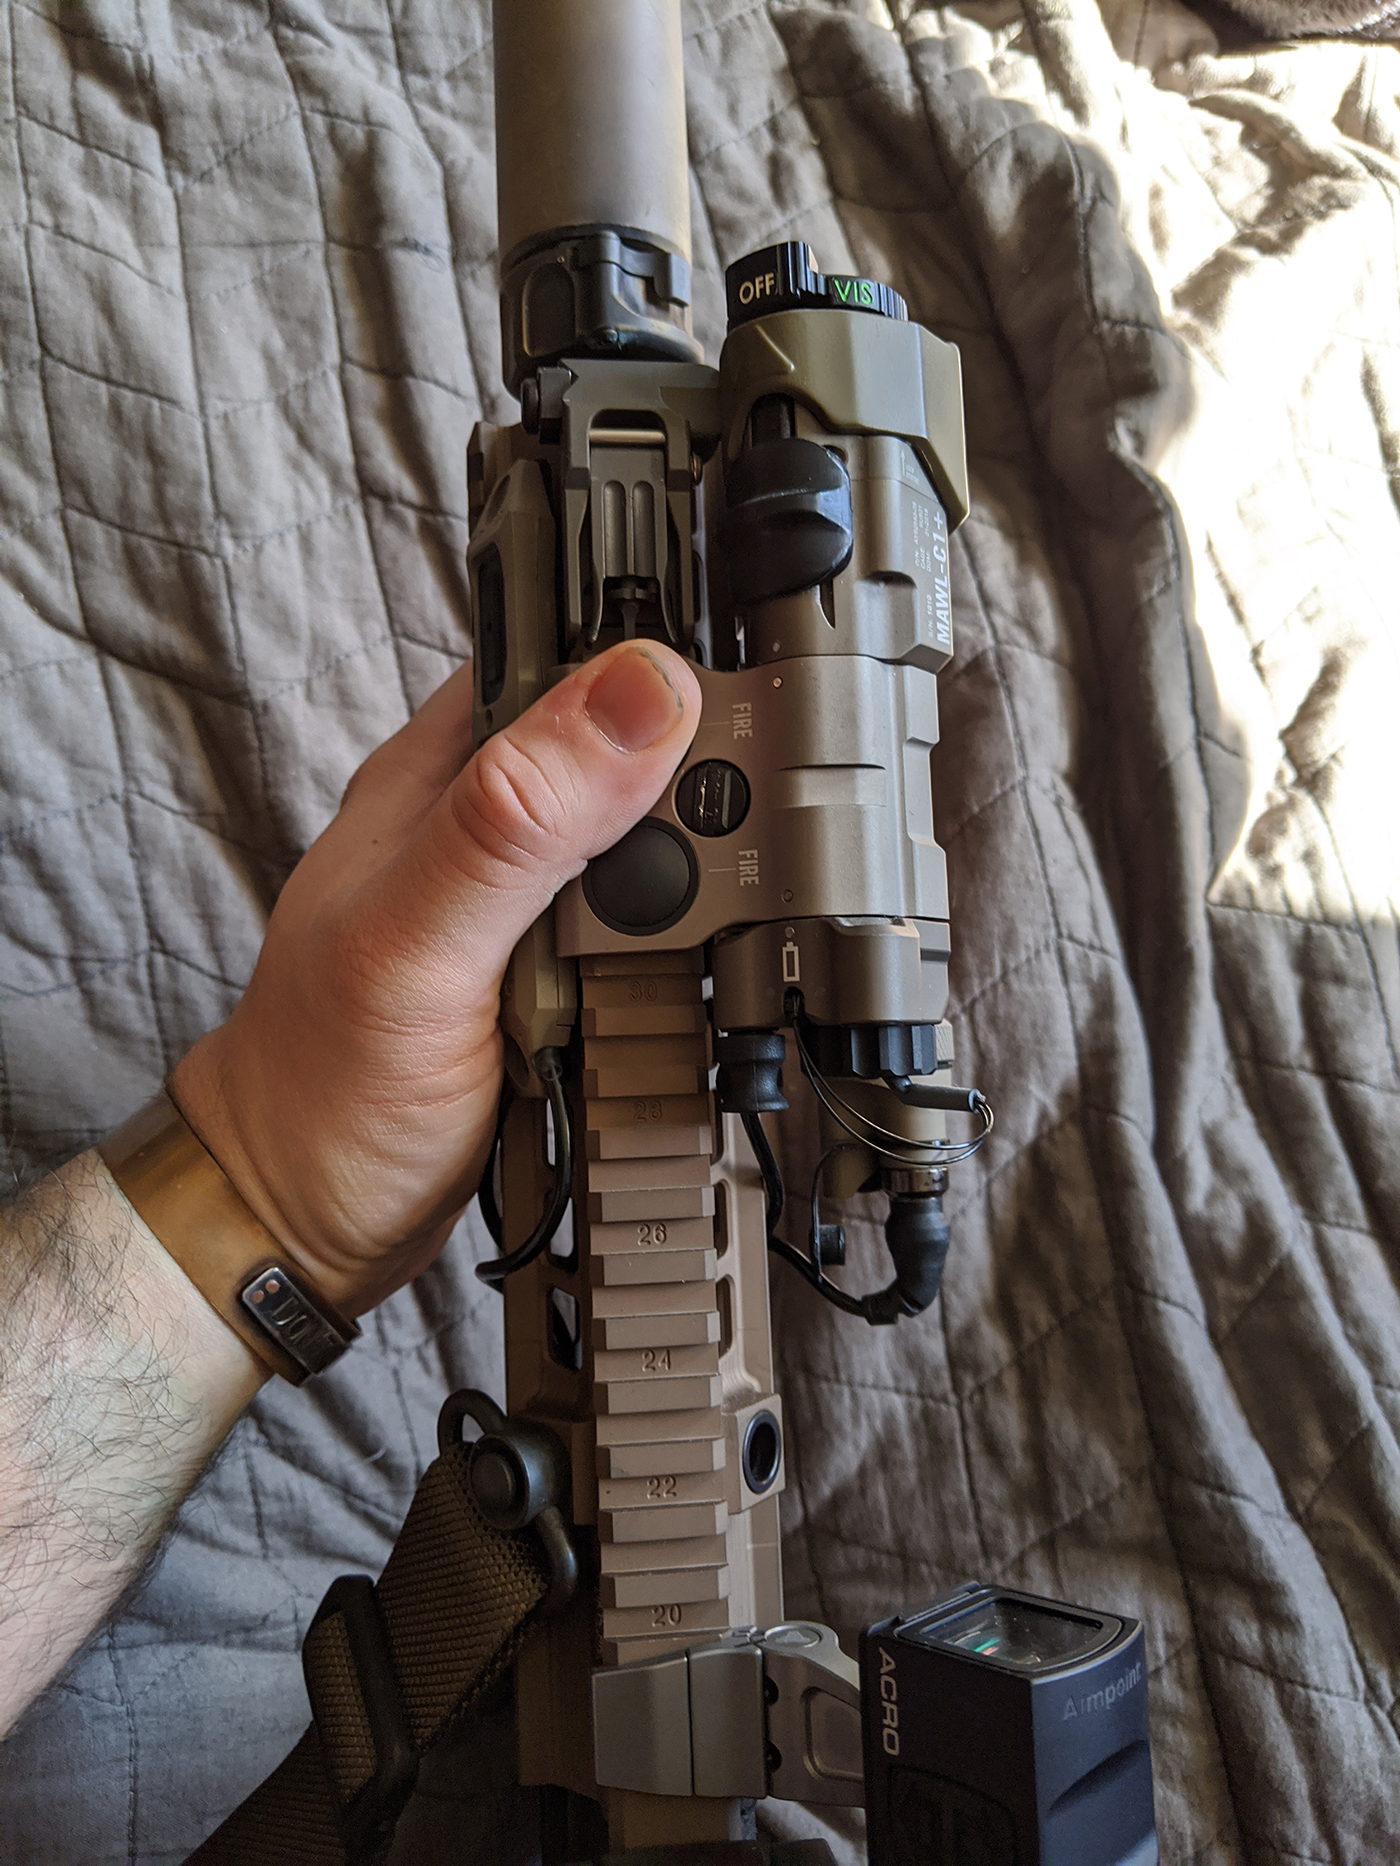 Thumb placement while working under nightvision, illustrated on HK416 CQB Carbine.